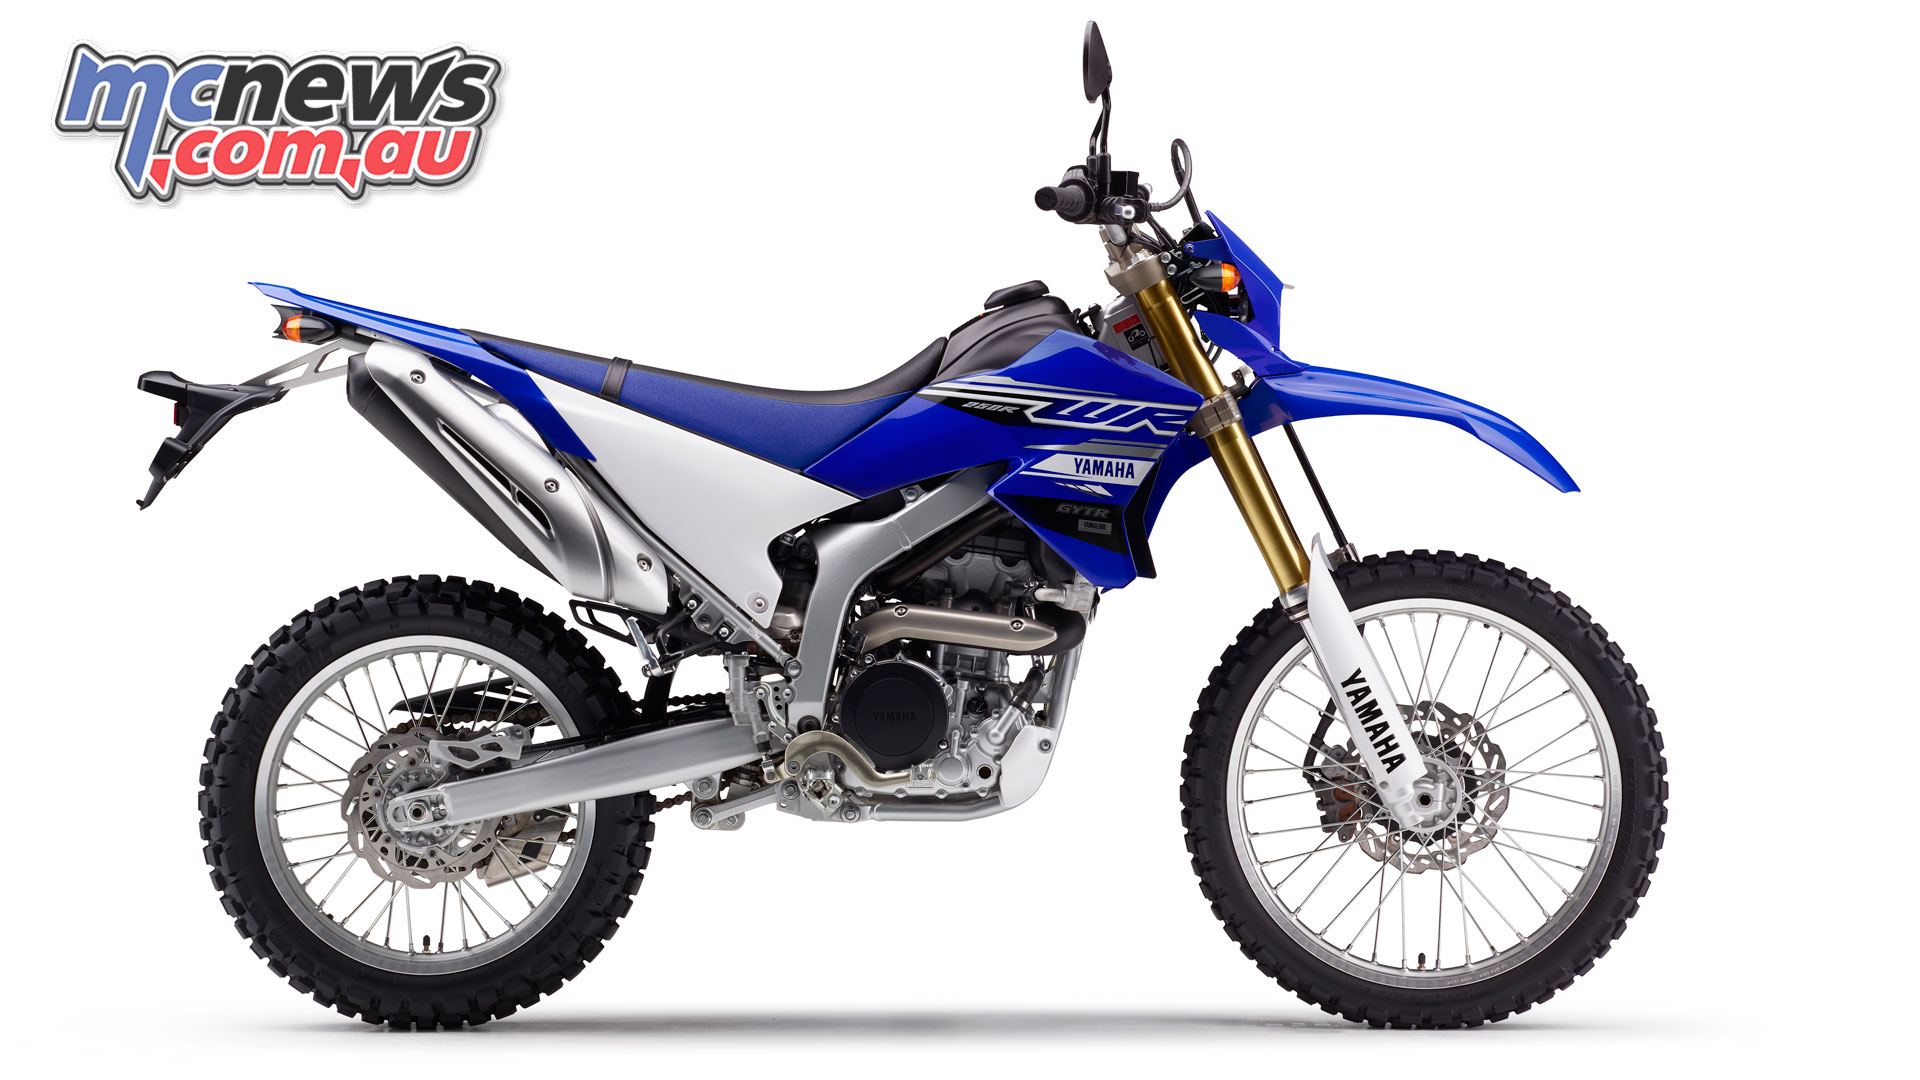 2020 Yamaha WR250R - Available now for $9599 incl GST ride away